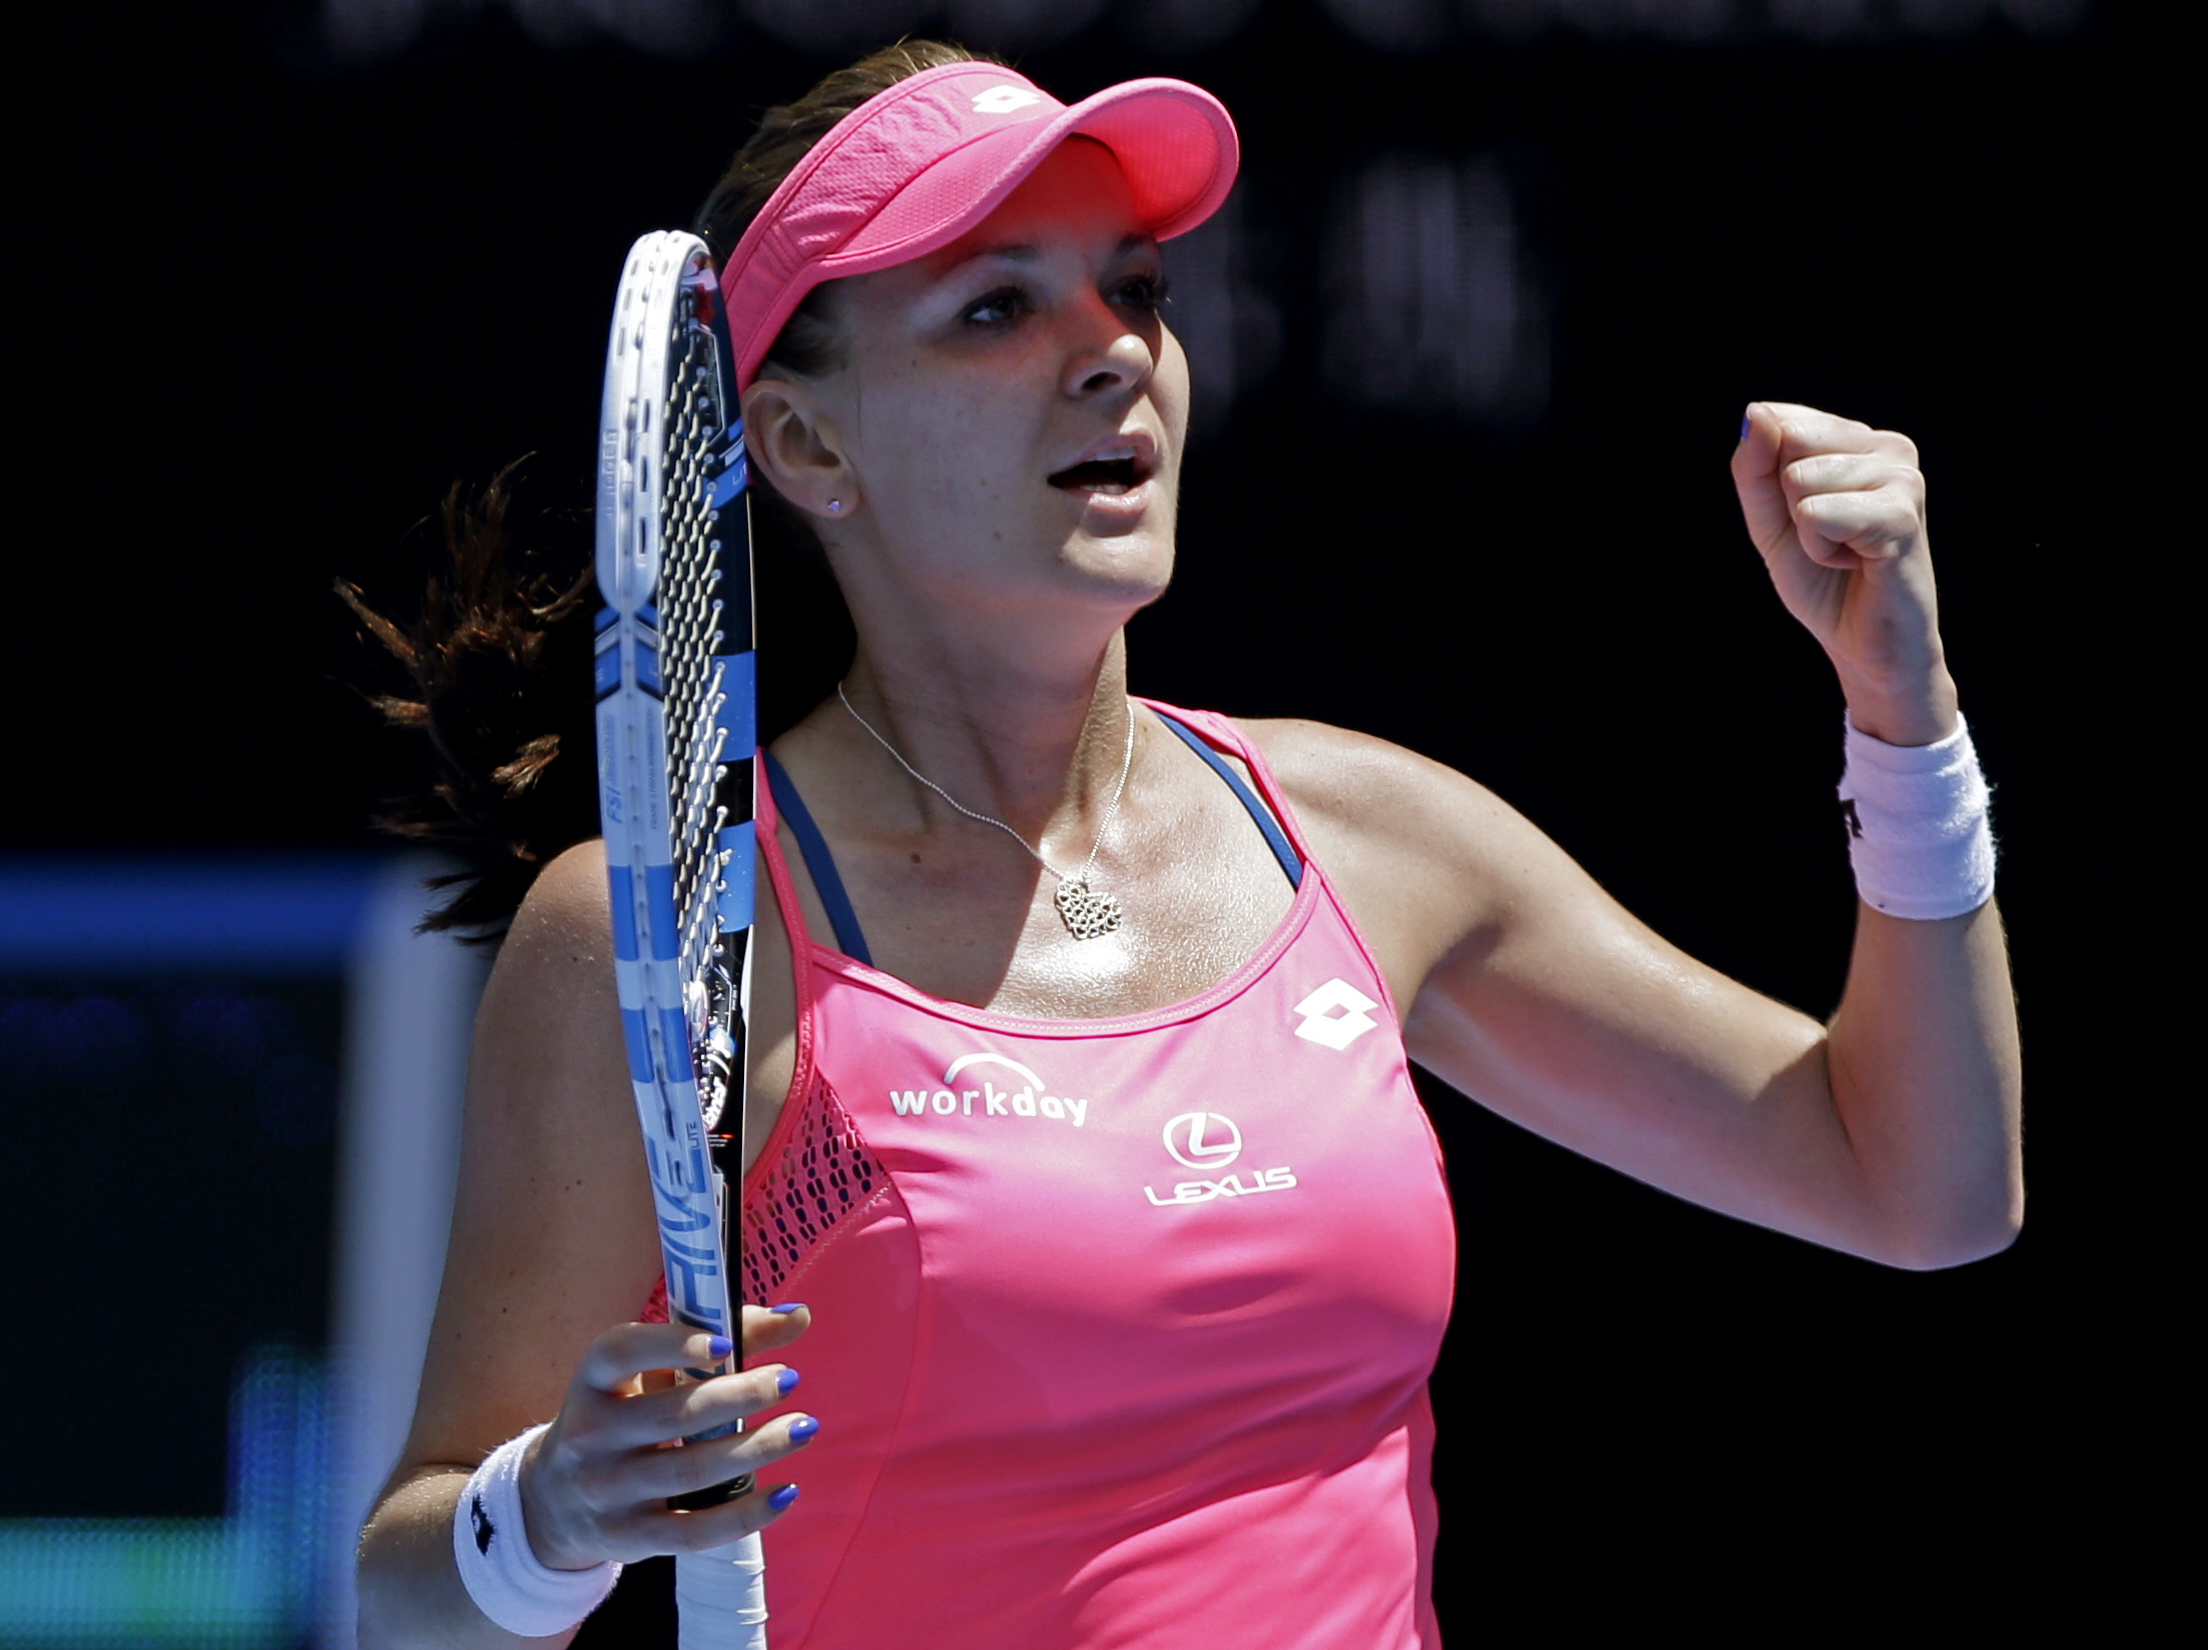 Agnieszka Radwanska of Poland celebrates after defeating Carla Suarez Navarro of Spain in their quarterfinal match at the Australian Open tennis championships in Melbourne, Australia, Tuesday, Jan. 26, 2016.(AP Photo/Aaron Favila)